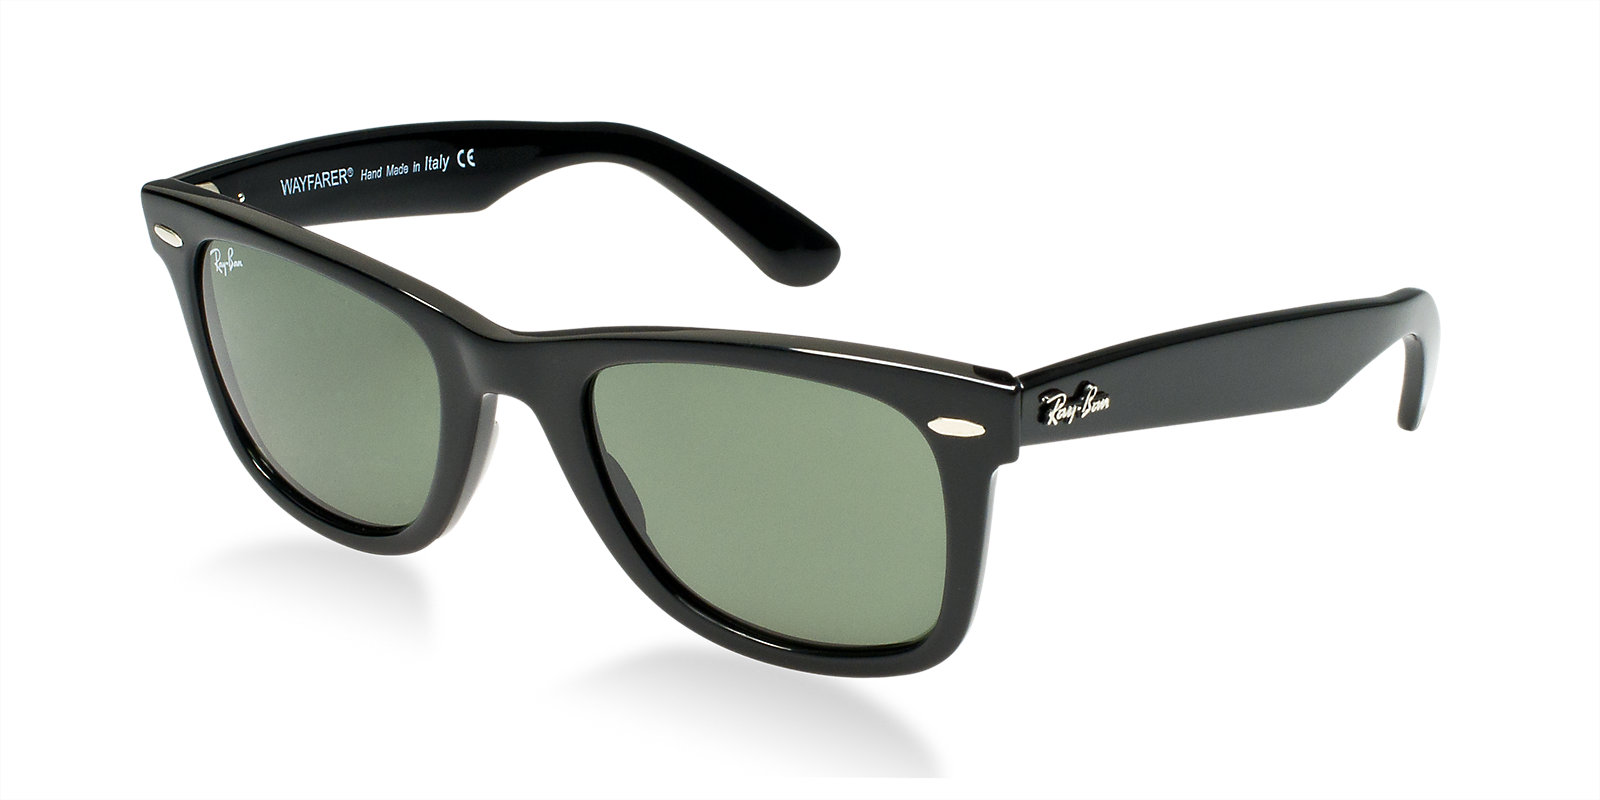 rb2140 901 black angle. Previous  Next. Previous  Next. RAY-BAN RB2140 901  BLACK CLASSIC WAYFARER SUNGLASSES d8f1268da6